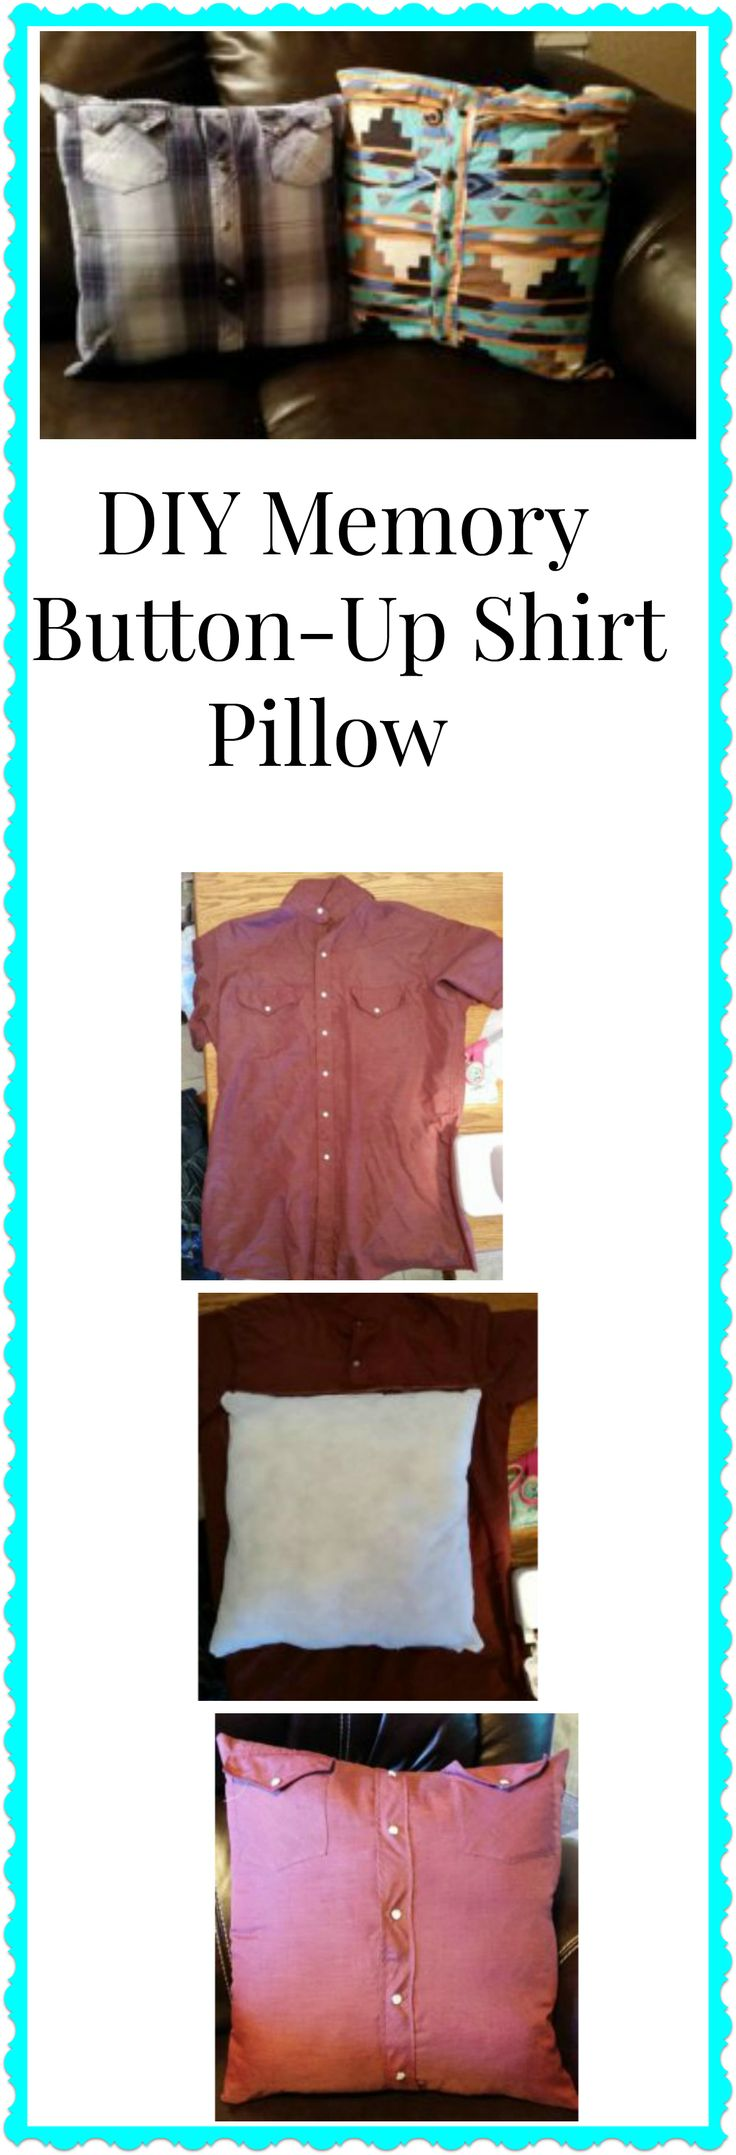 A memory button-up shirt pillow is the perfect use for old shirts. I made these ones using my grandpa's old shirts, who passed away 2 years ago.